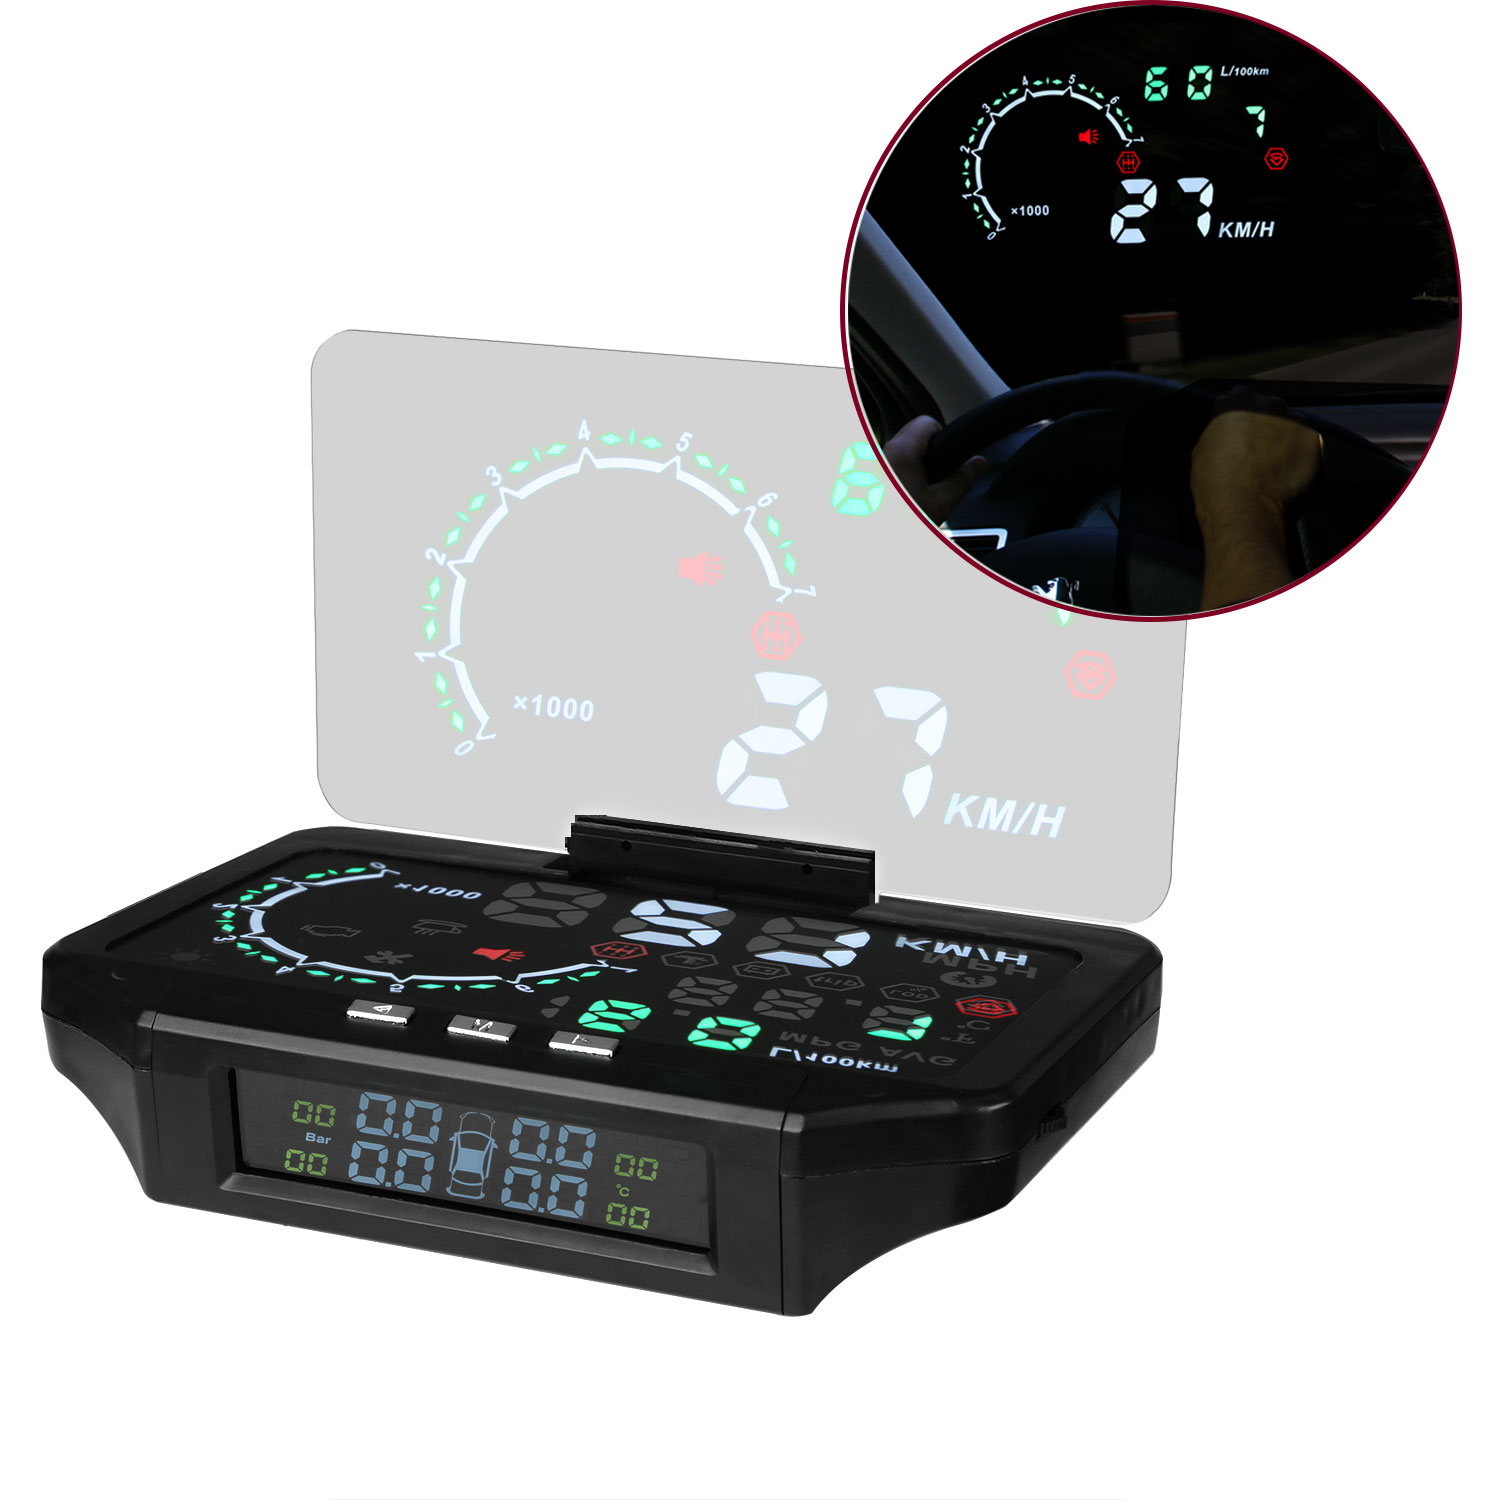 HUD car head-up display with tire pressure monitoring car driving computer checker display стоимость